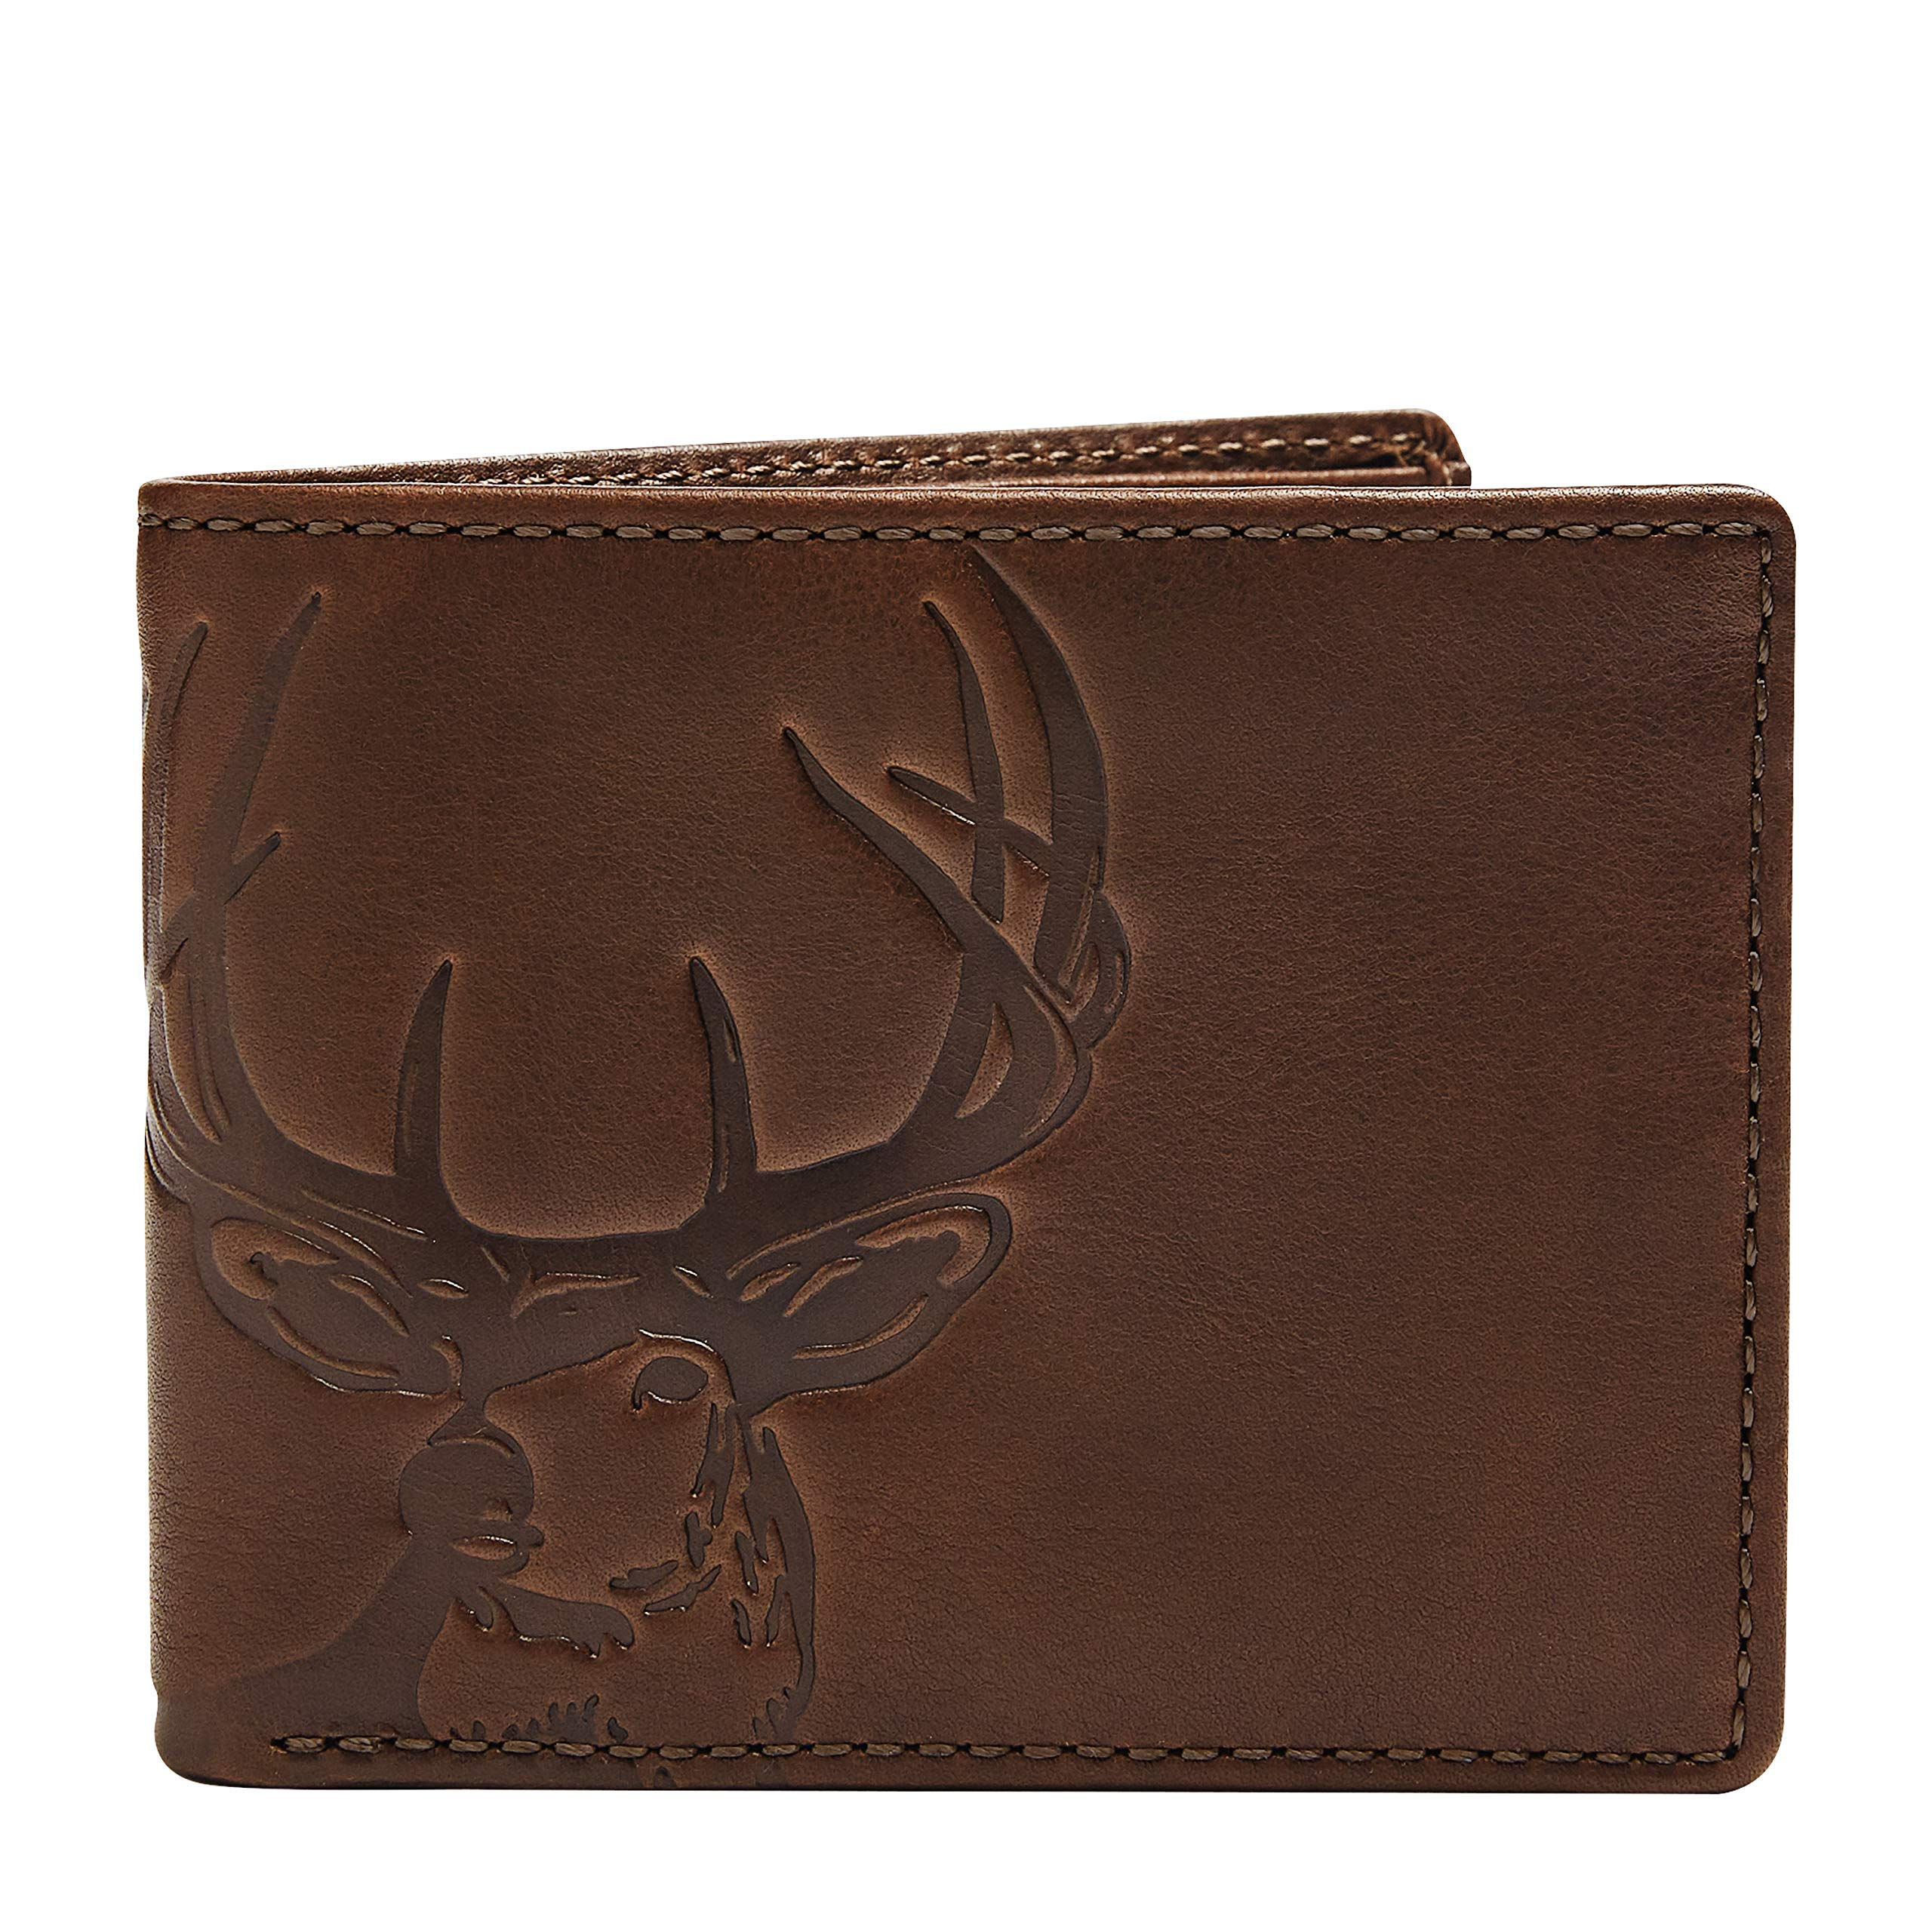 HOJ Co. DEER Wallet-Double ID Bifold-Full Grain Mens Leather Wallet-Multi Card Capacity